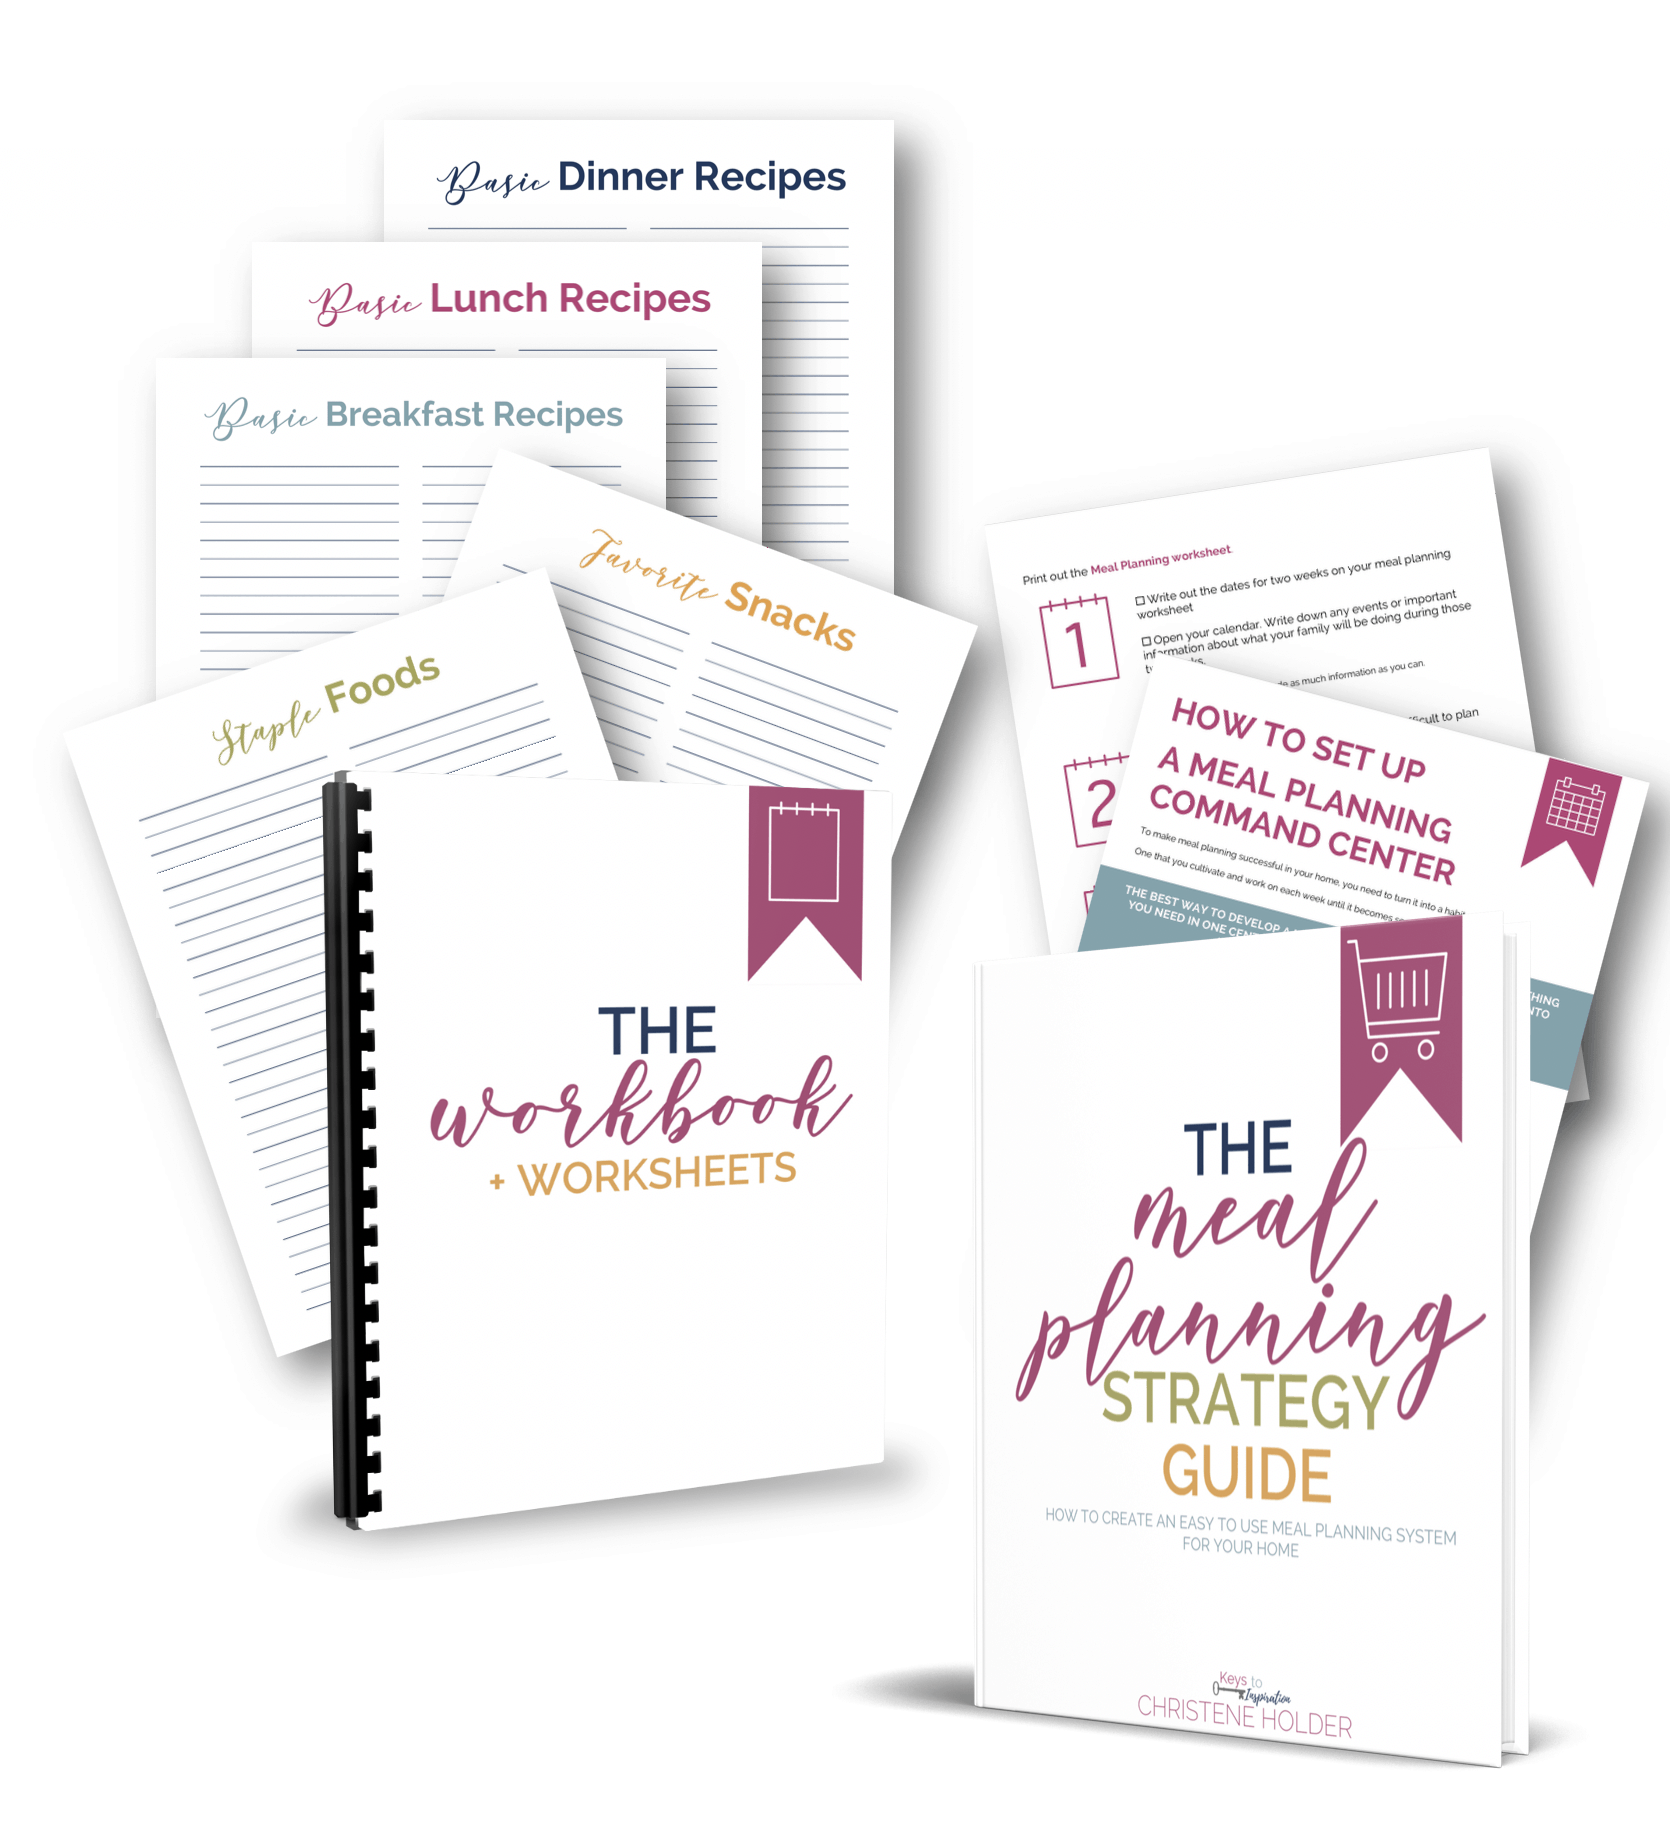 the meal planning strategy guide mockup with printable pages